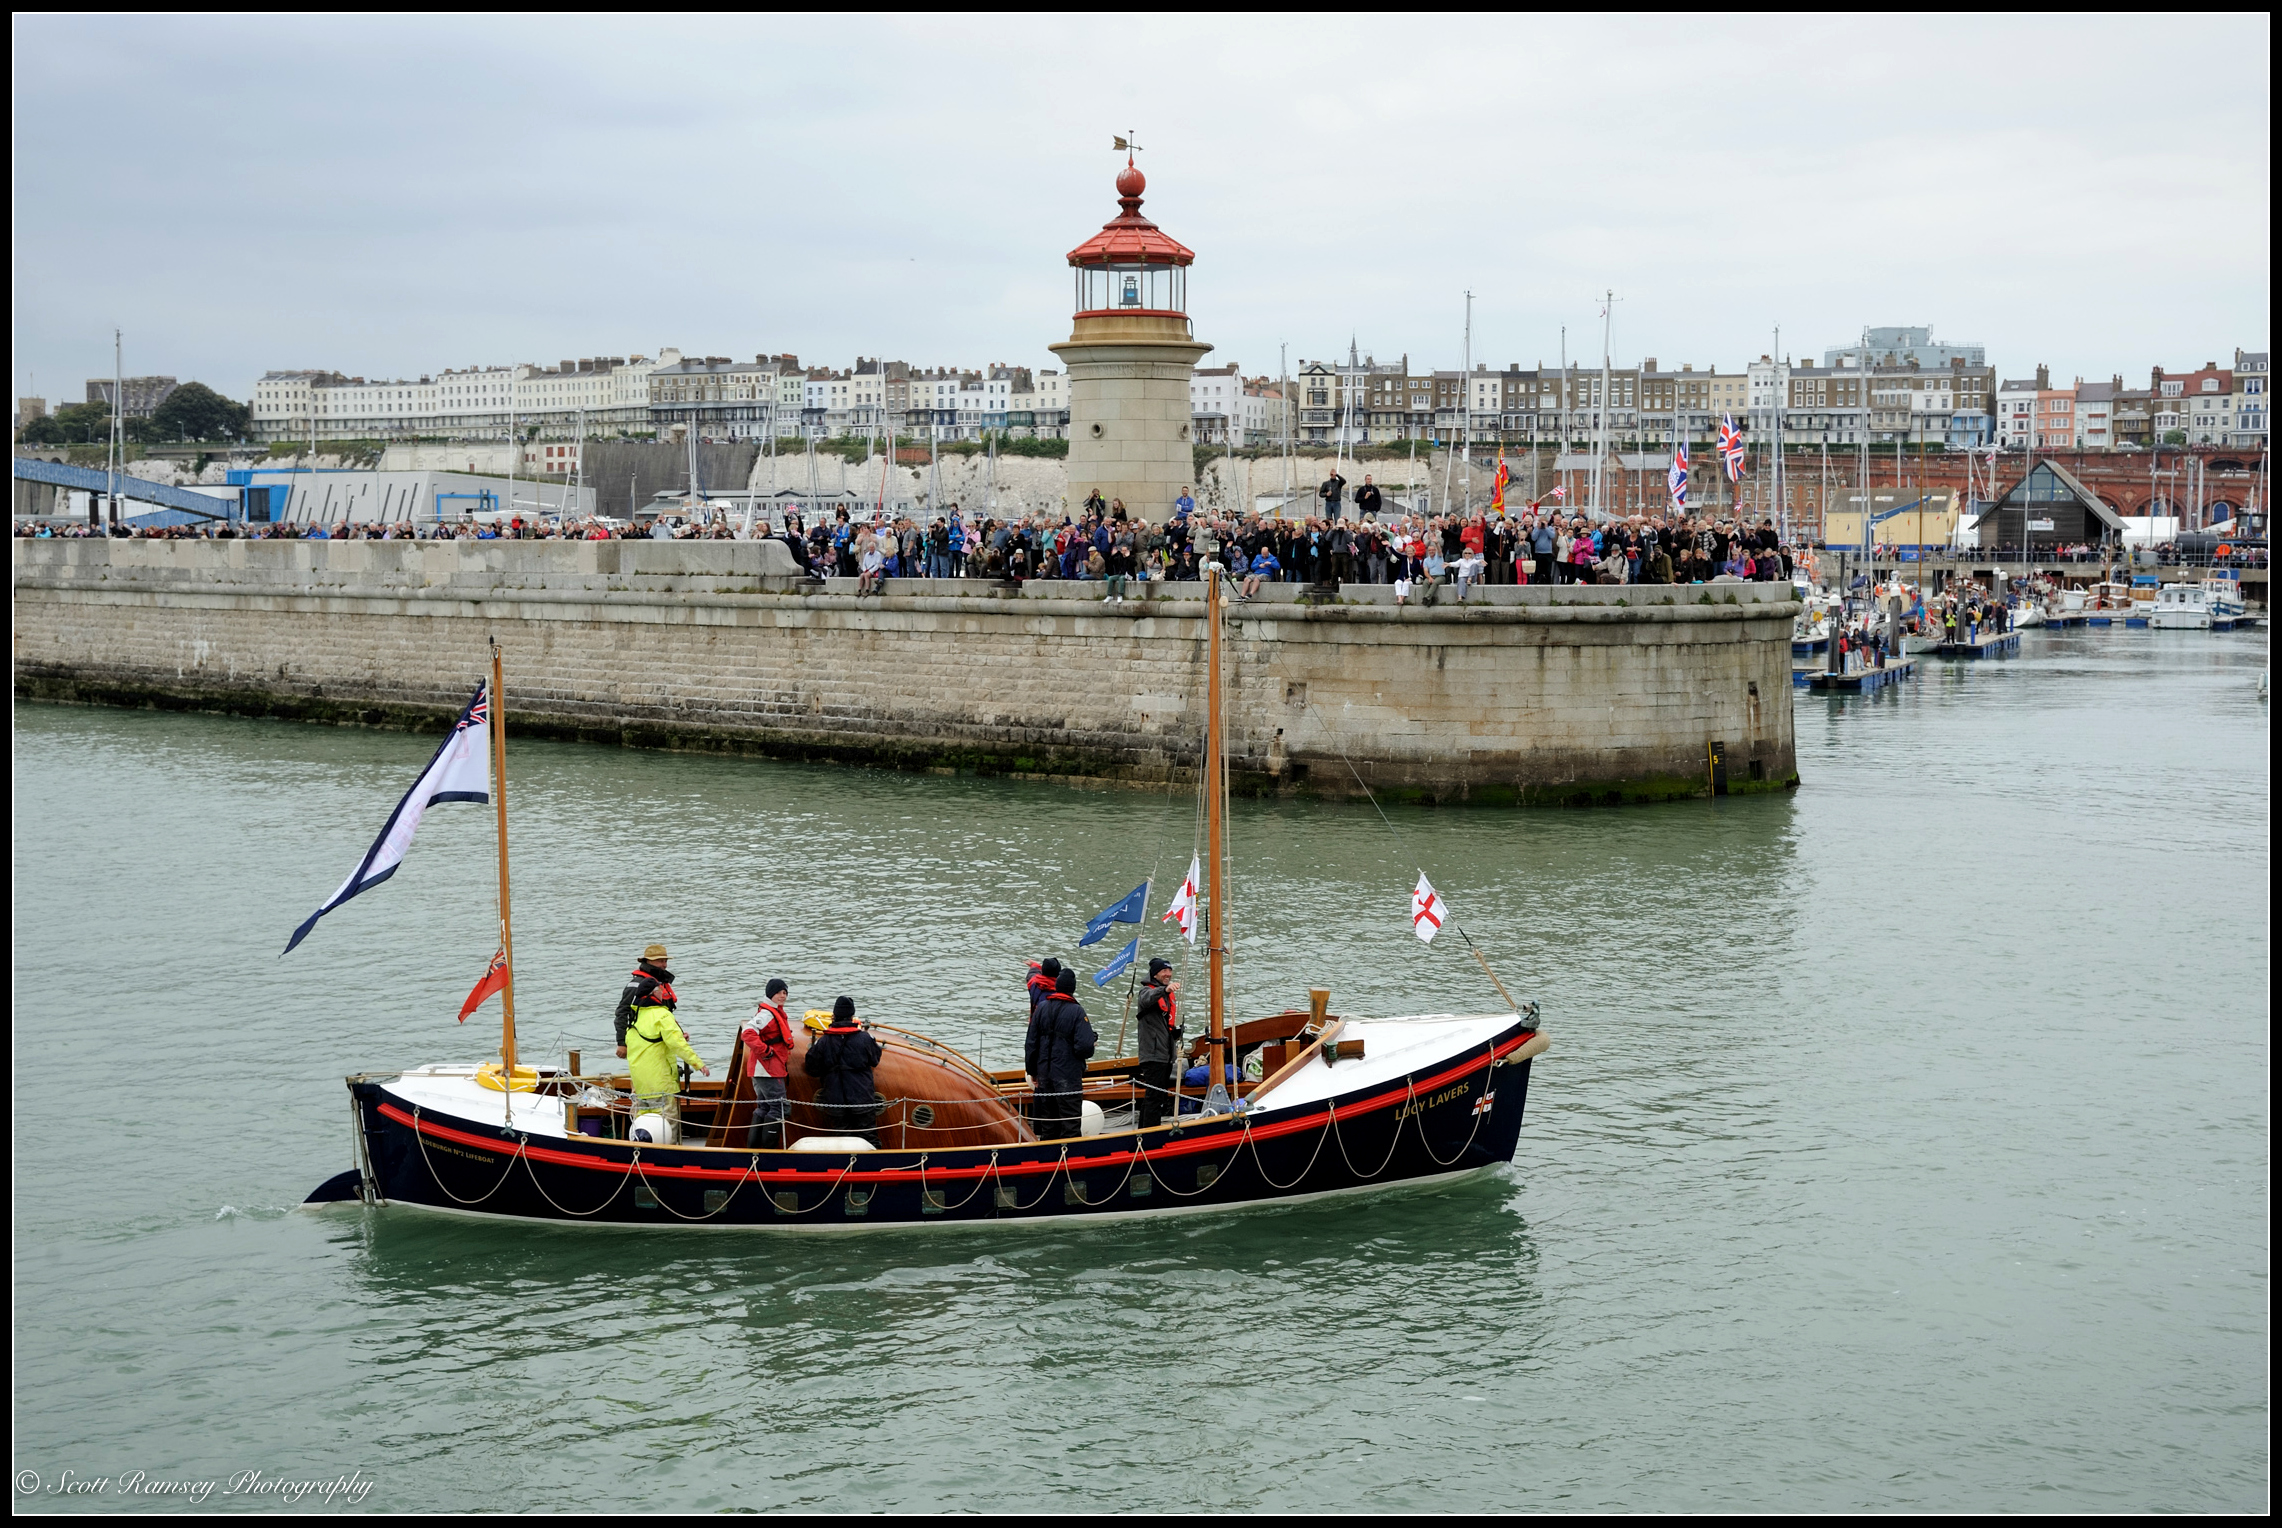 The Lucy Lavers , a 1940 RNLI lifeboat and one of the original Dunkirk Little Ships, is cheered byspectators as it returnsto the Royal Harbour Marina Ramsgate in Kent, UK, during a weekend of events to commemorate the 75th anniversary of Operation Dynamo.©Scott Ramsey Photography